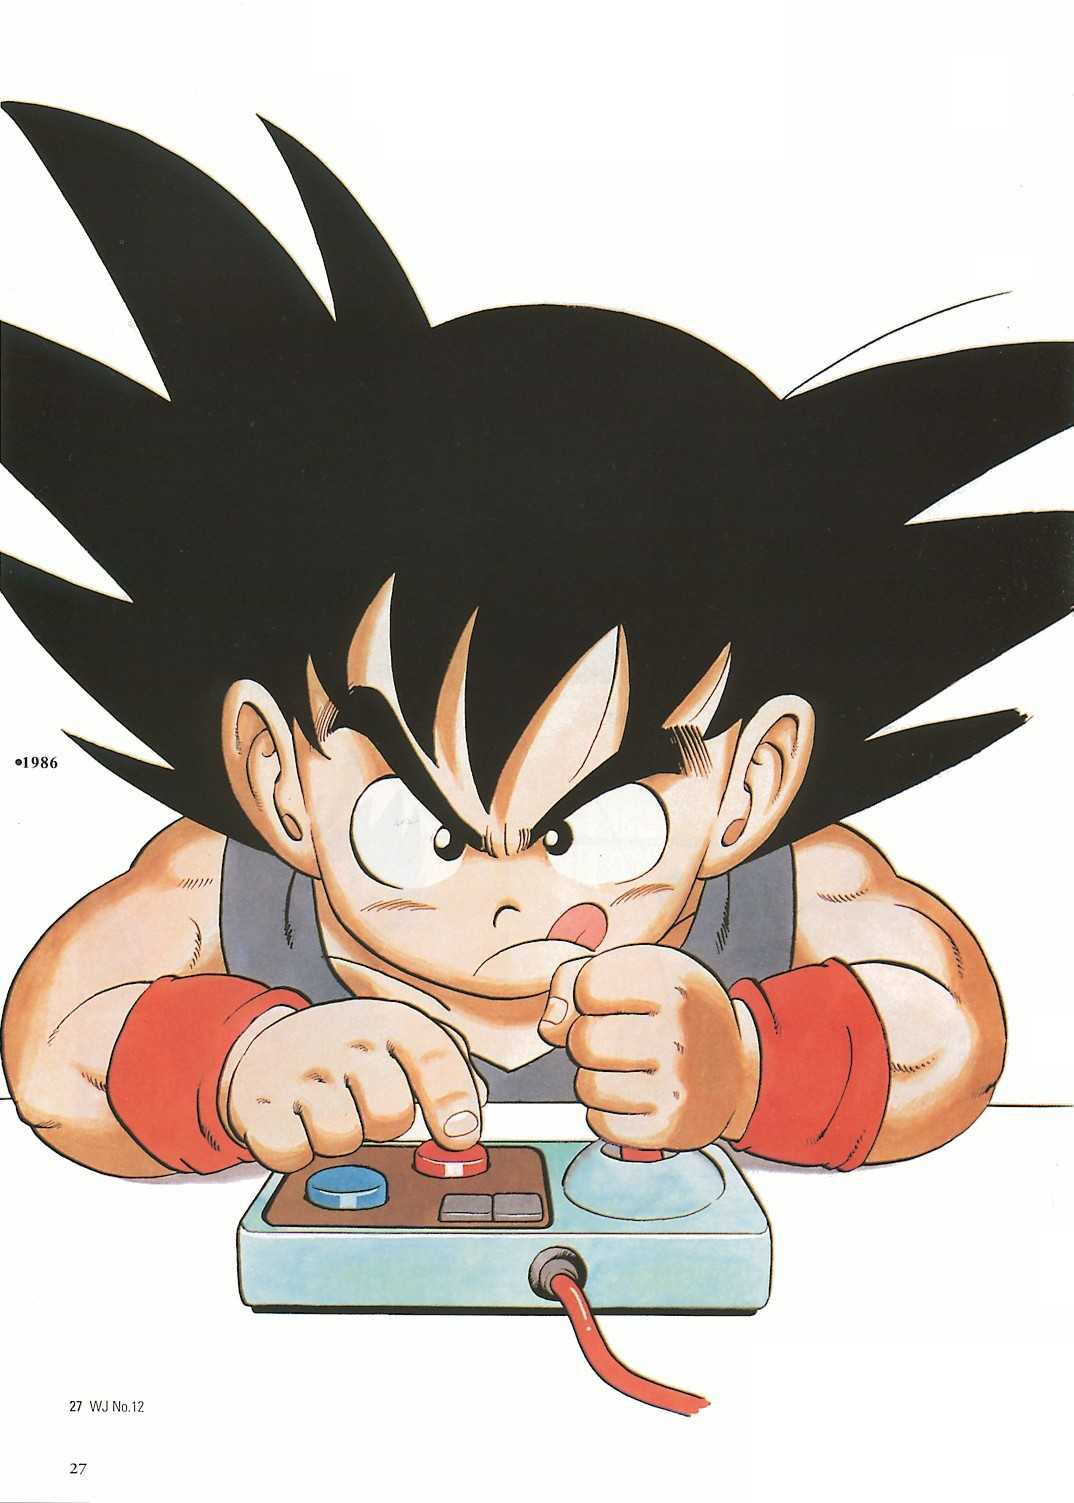 anime character playing video games list of dragon ball video games | dragon ball wiki | fandom